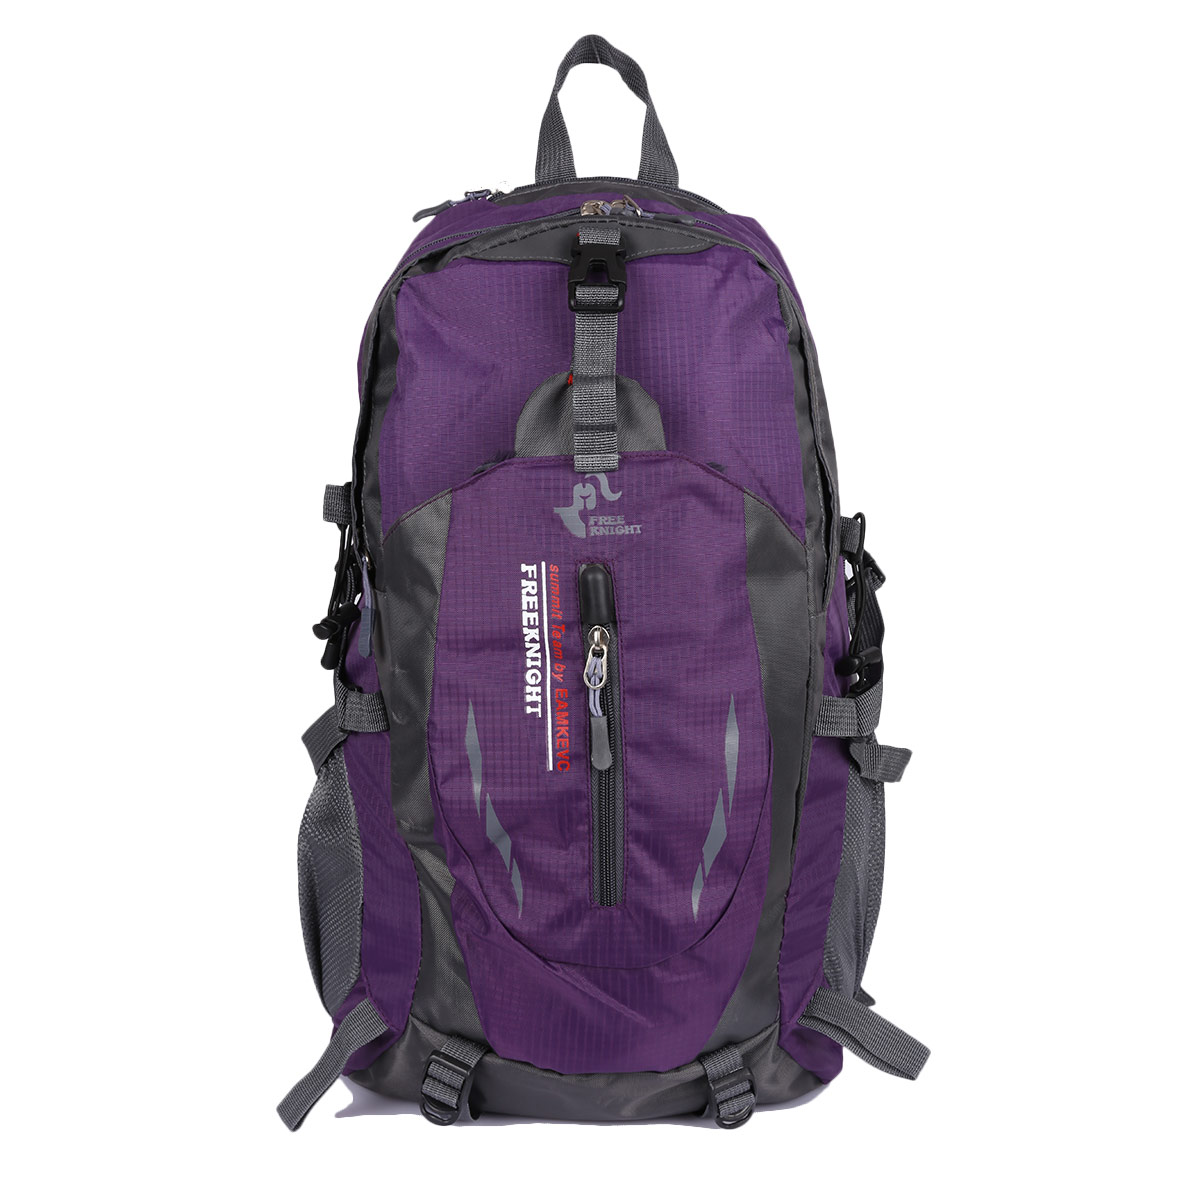 Free Knight 40LSMALL LIGHTWEIGHT HIKING CAMPING OUTDOOR BACKPACK RUCKSACK Waterproof US New